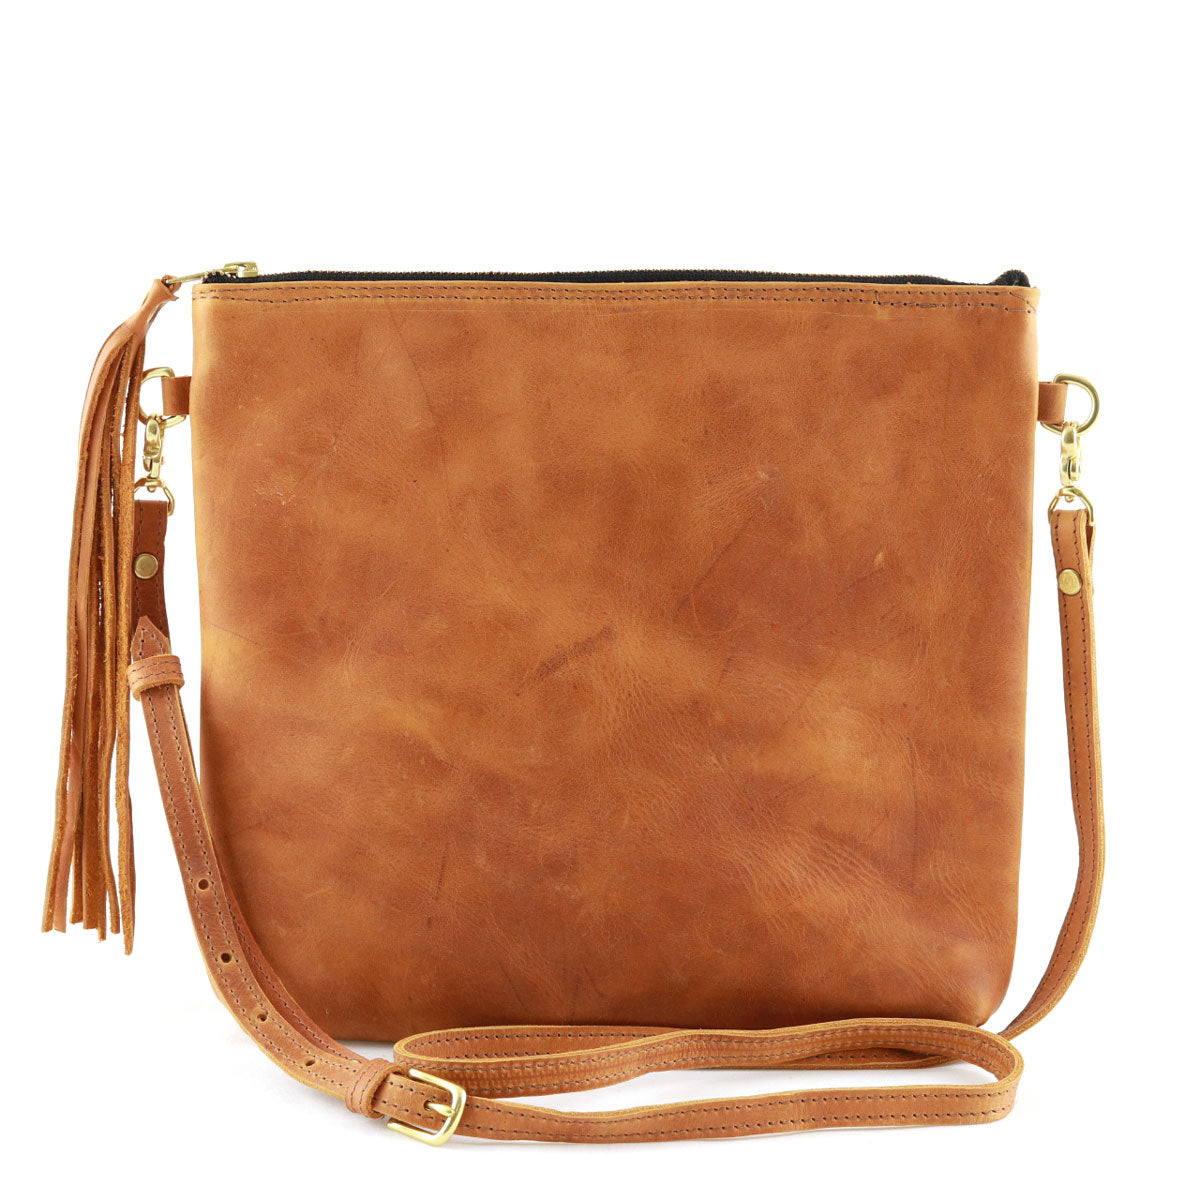 "Antigua Tan Leather Tassel Cross Body Clutch (1"" base)"